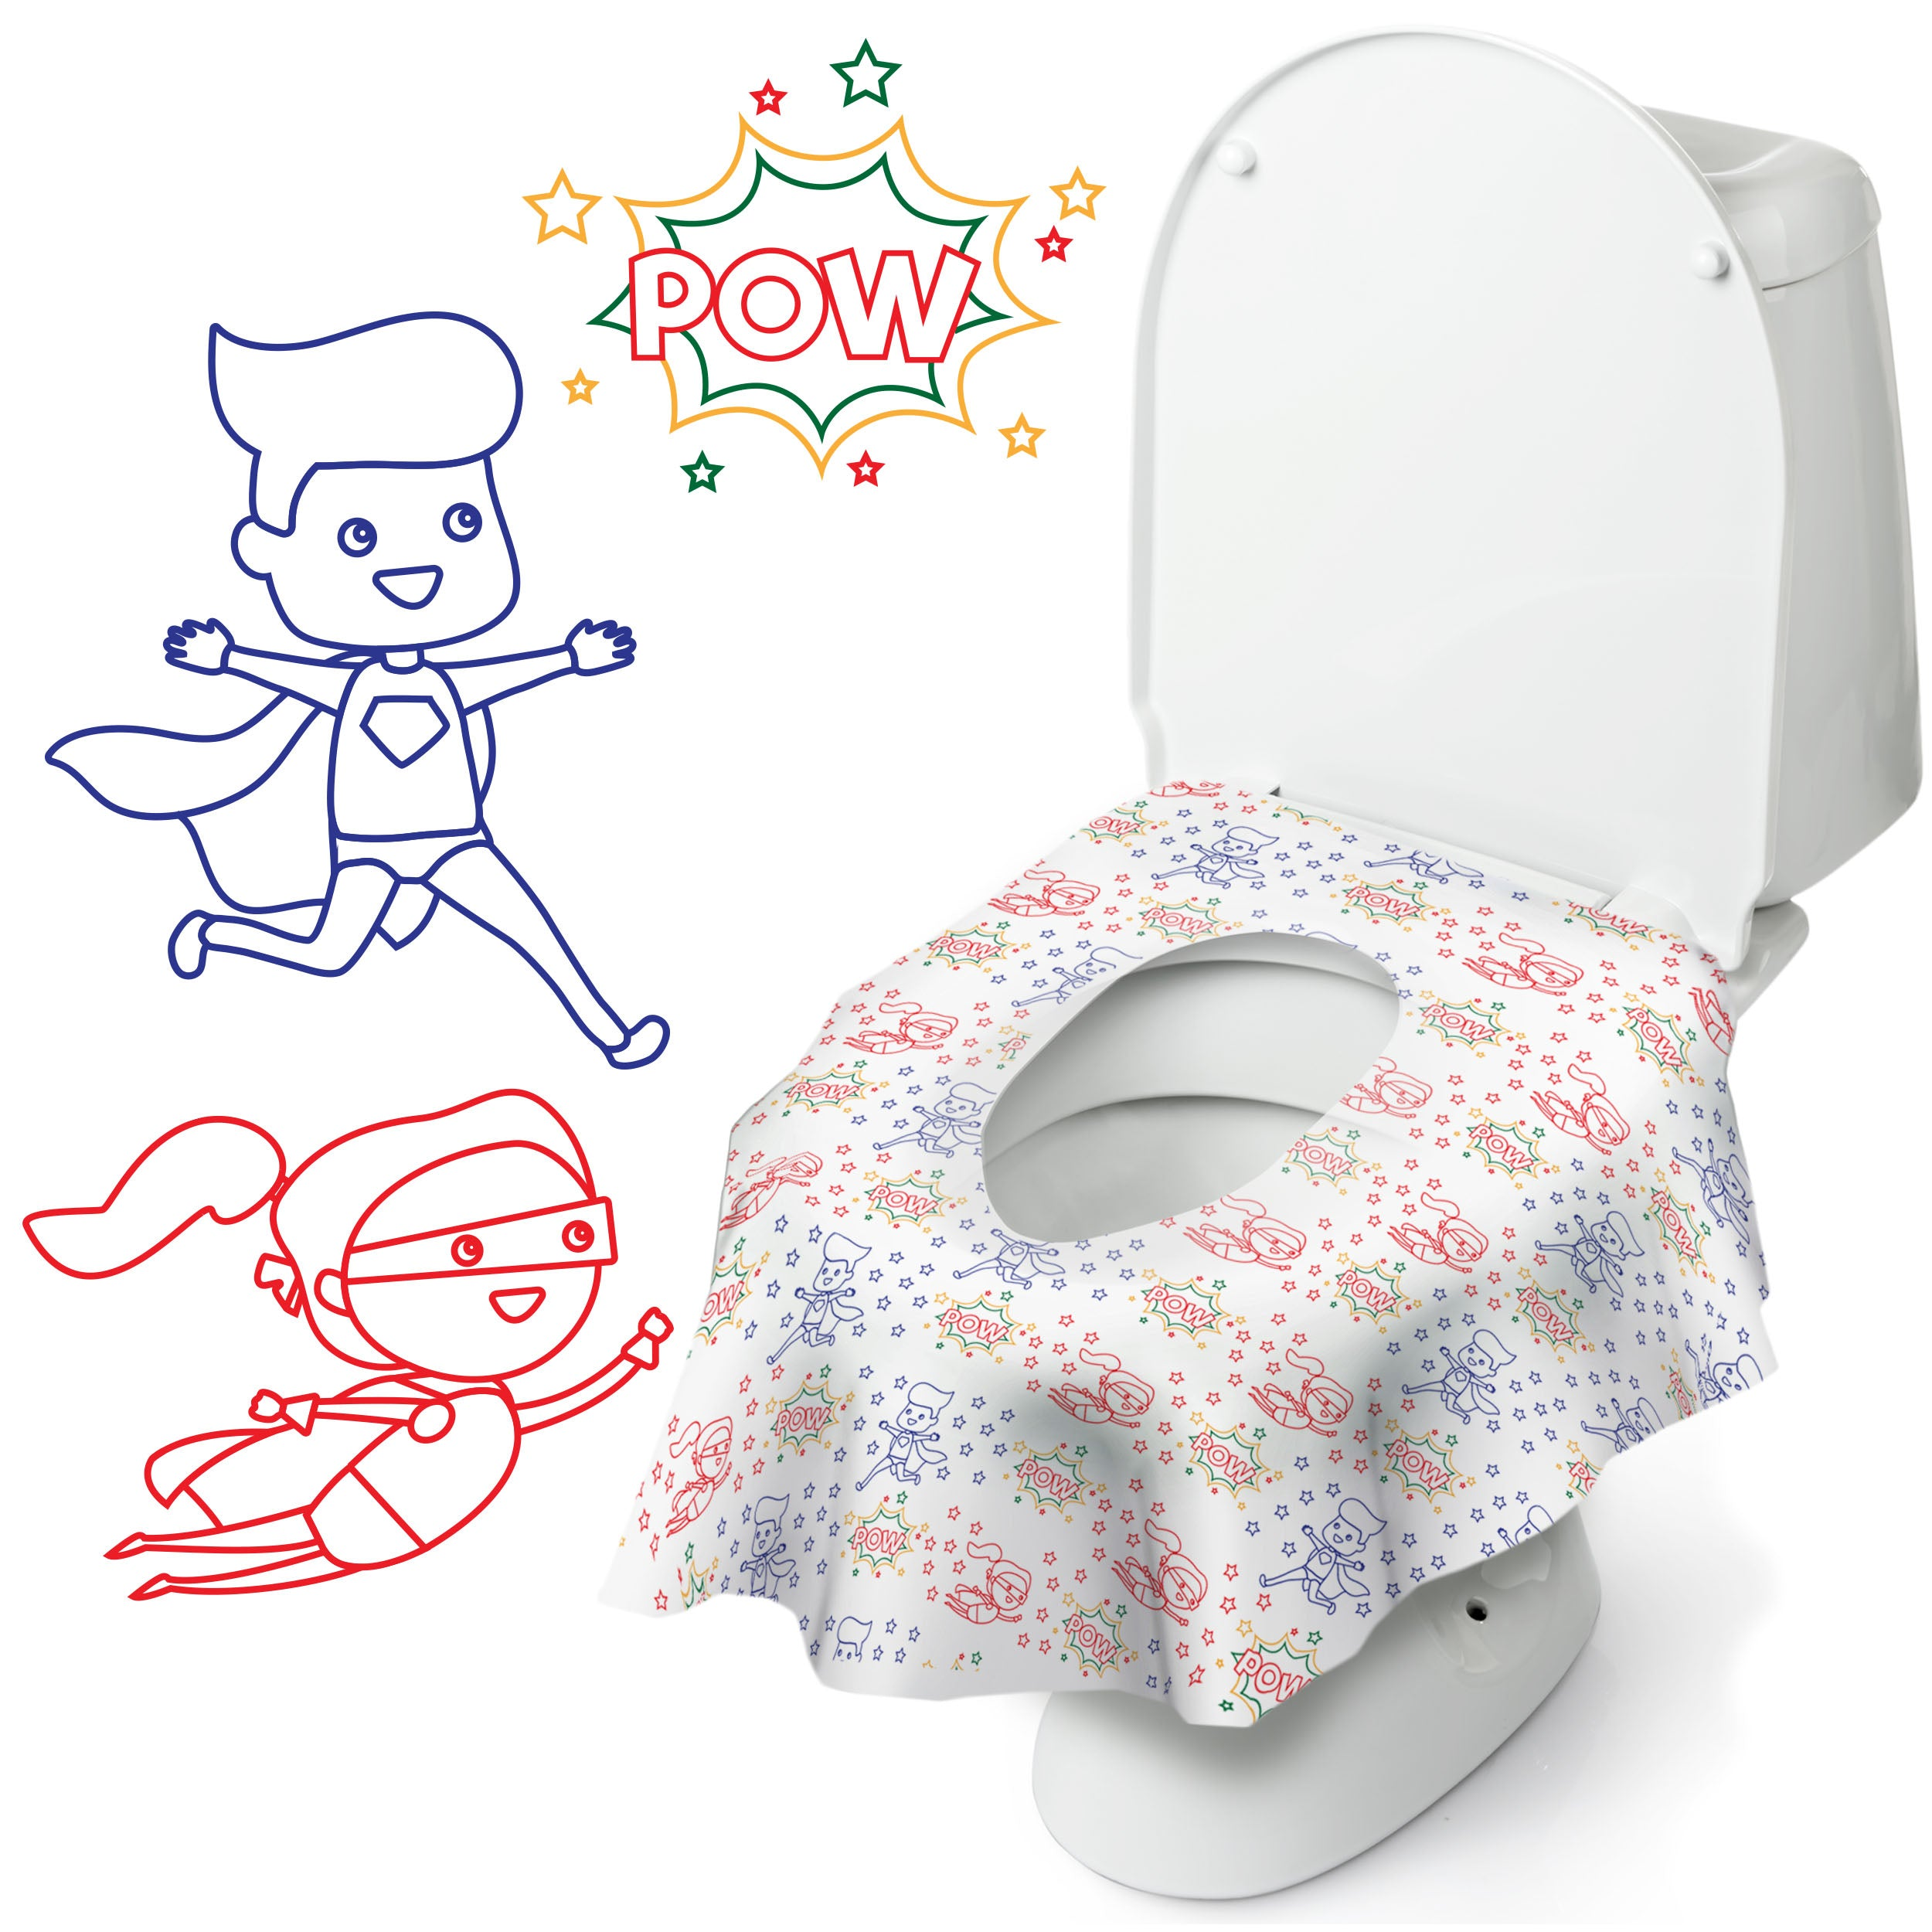 Super Potty Protector: Disposable Toilet Seat Covers